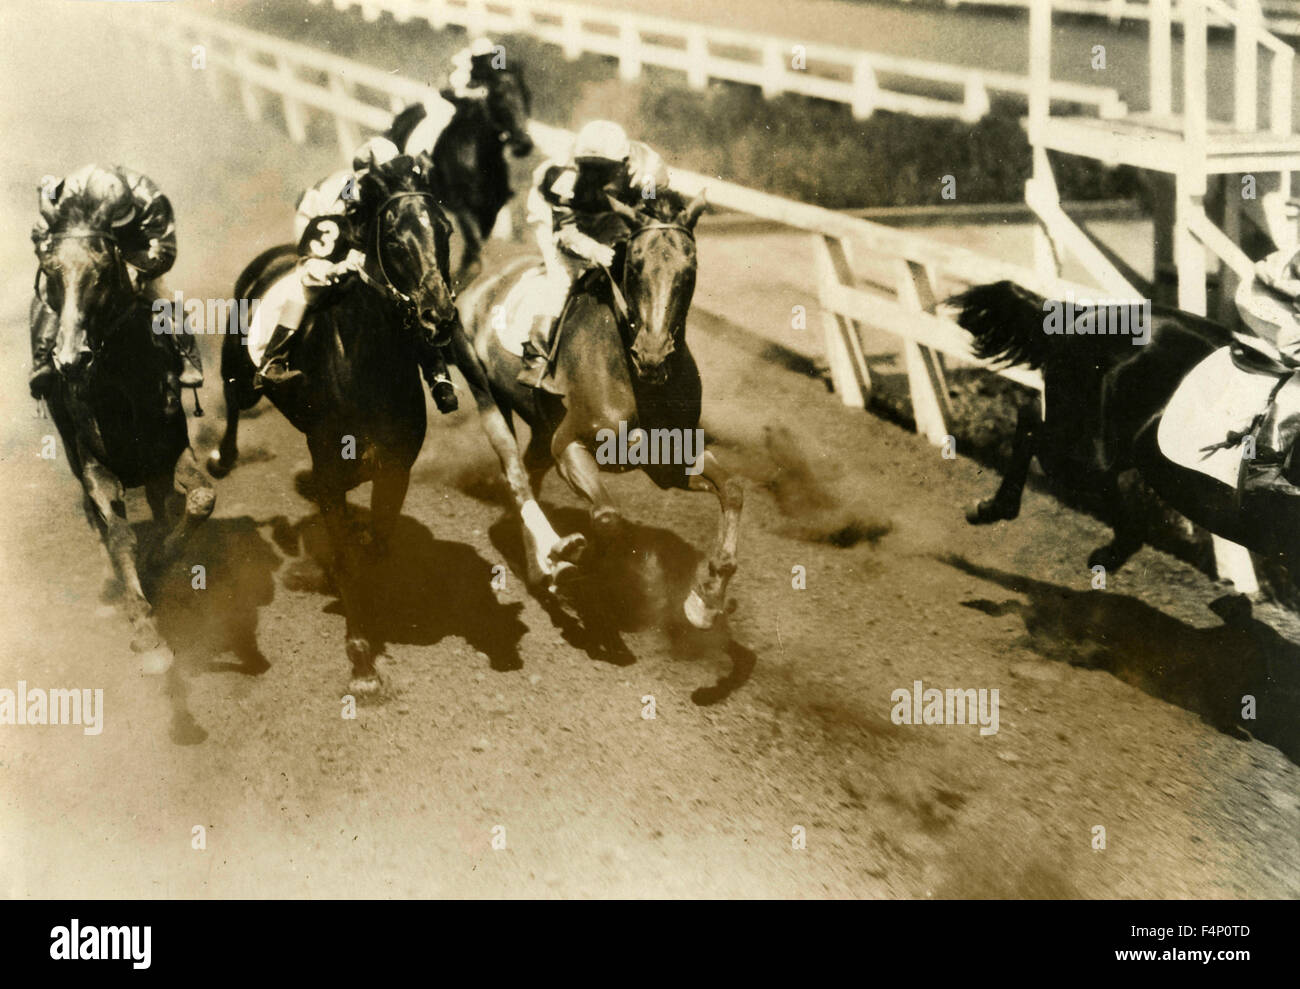 Horse Racing 1930 Stock Photos Amp Horse Racing 1930 Stock